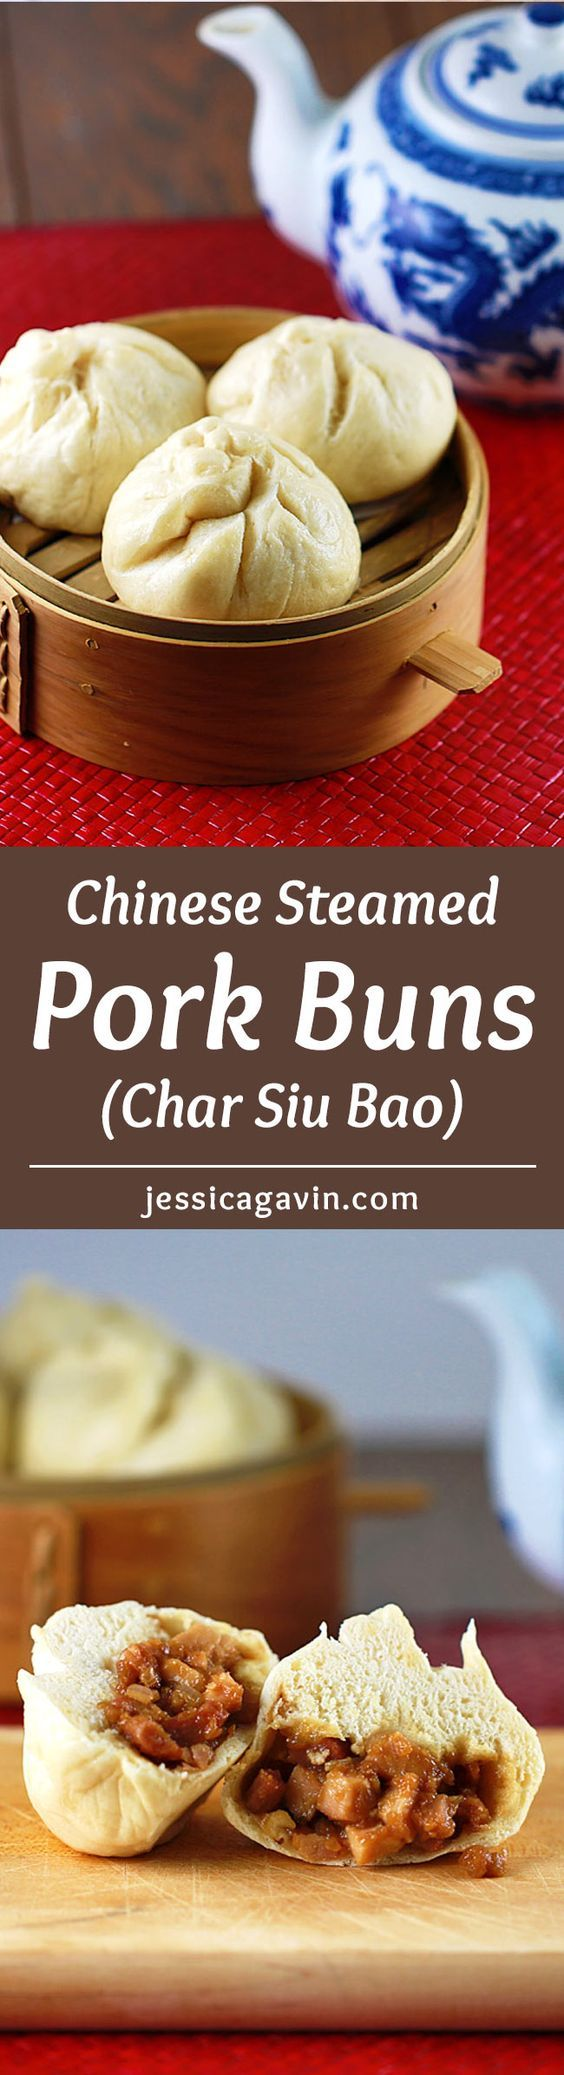 Steamed Pork Bun Recipe - Traditional Chinese char siu bao recipe. Each soft and tender bun is filled with sweet and savory barbecue pork. You don't have to leave home for some dim sum! | jessicagavin.com